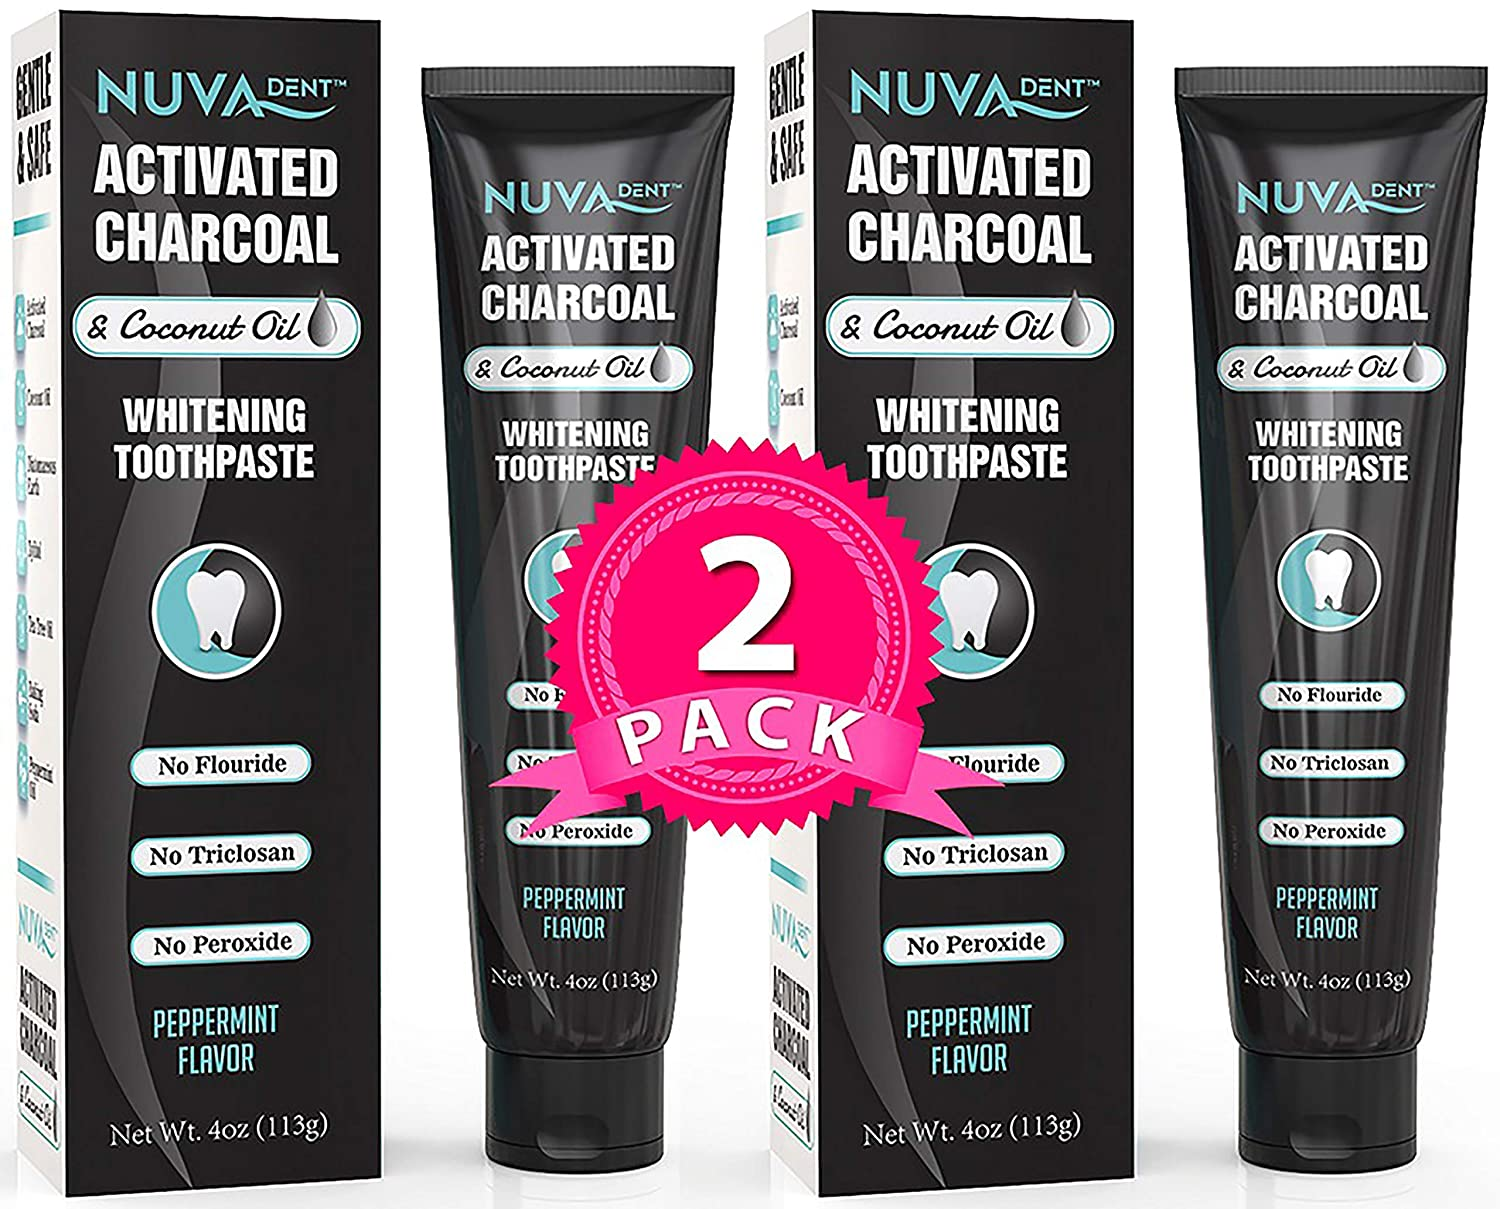 Nuva Dent Activated Charcoal Toothpaste